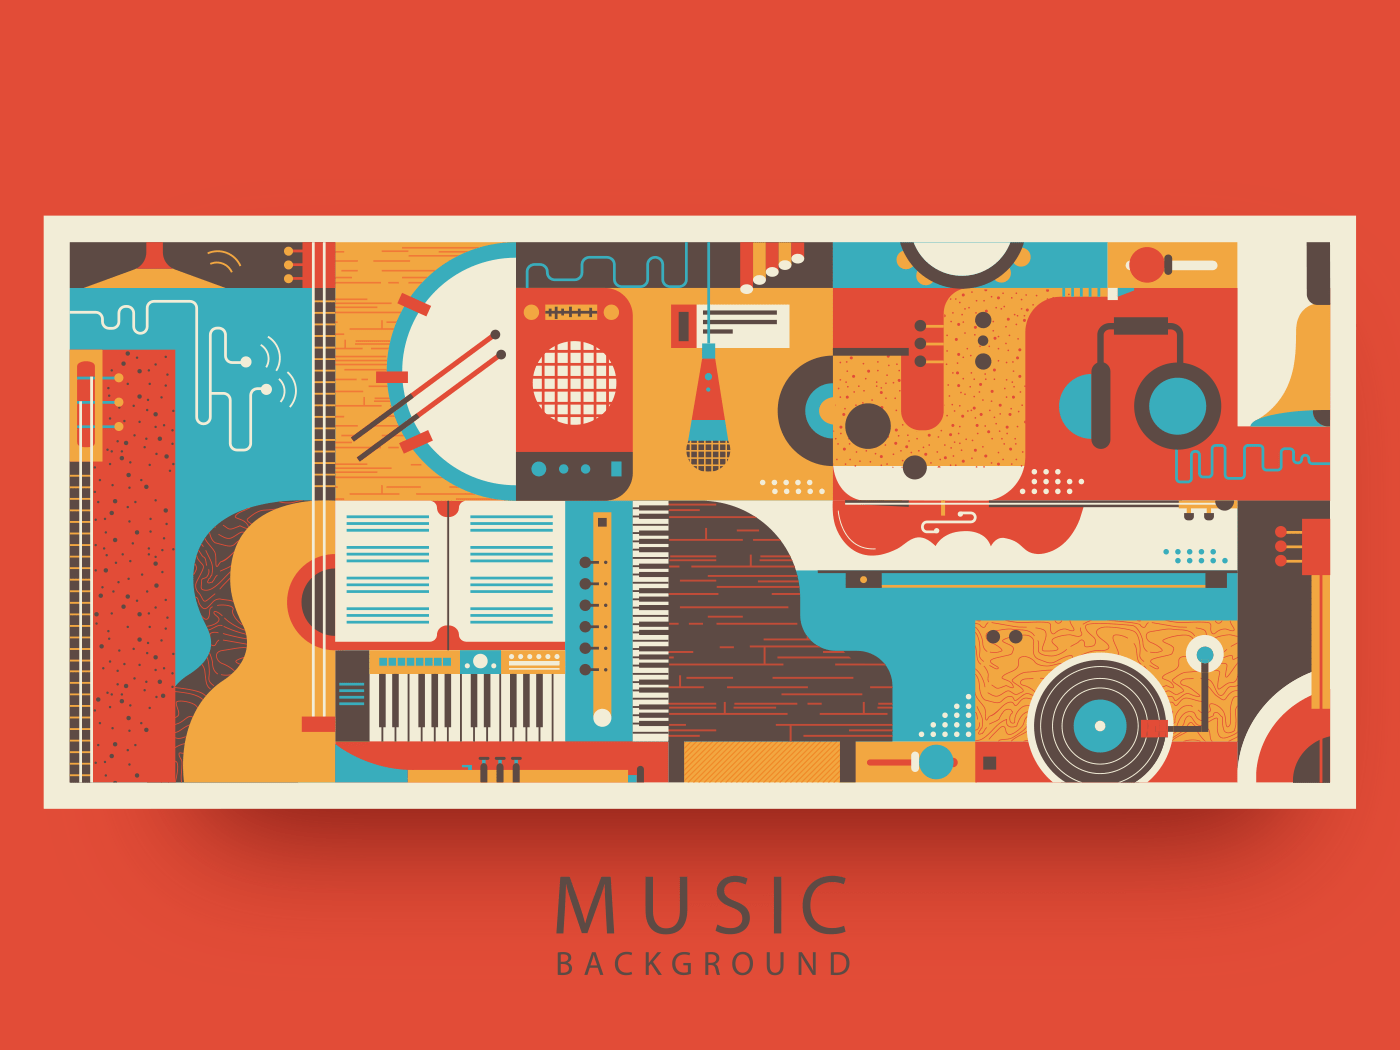 Music abstract background illustration